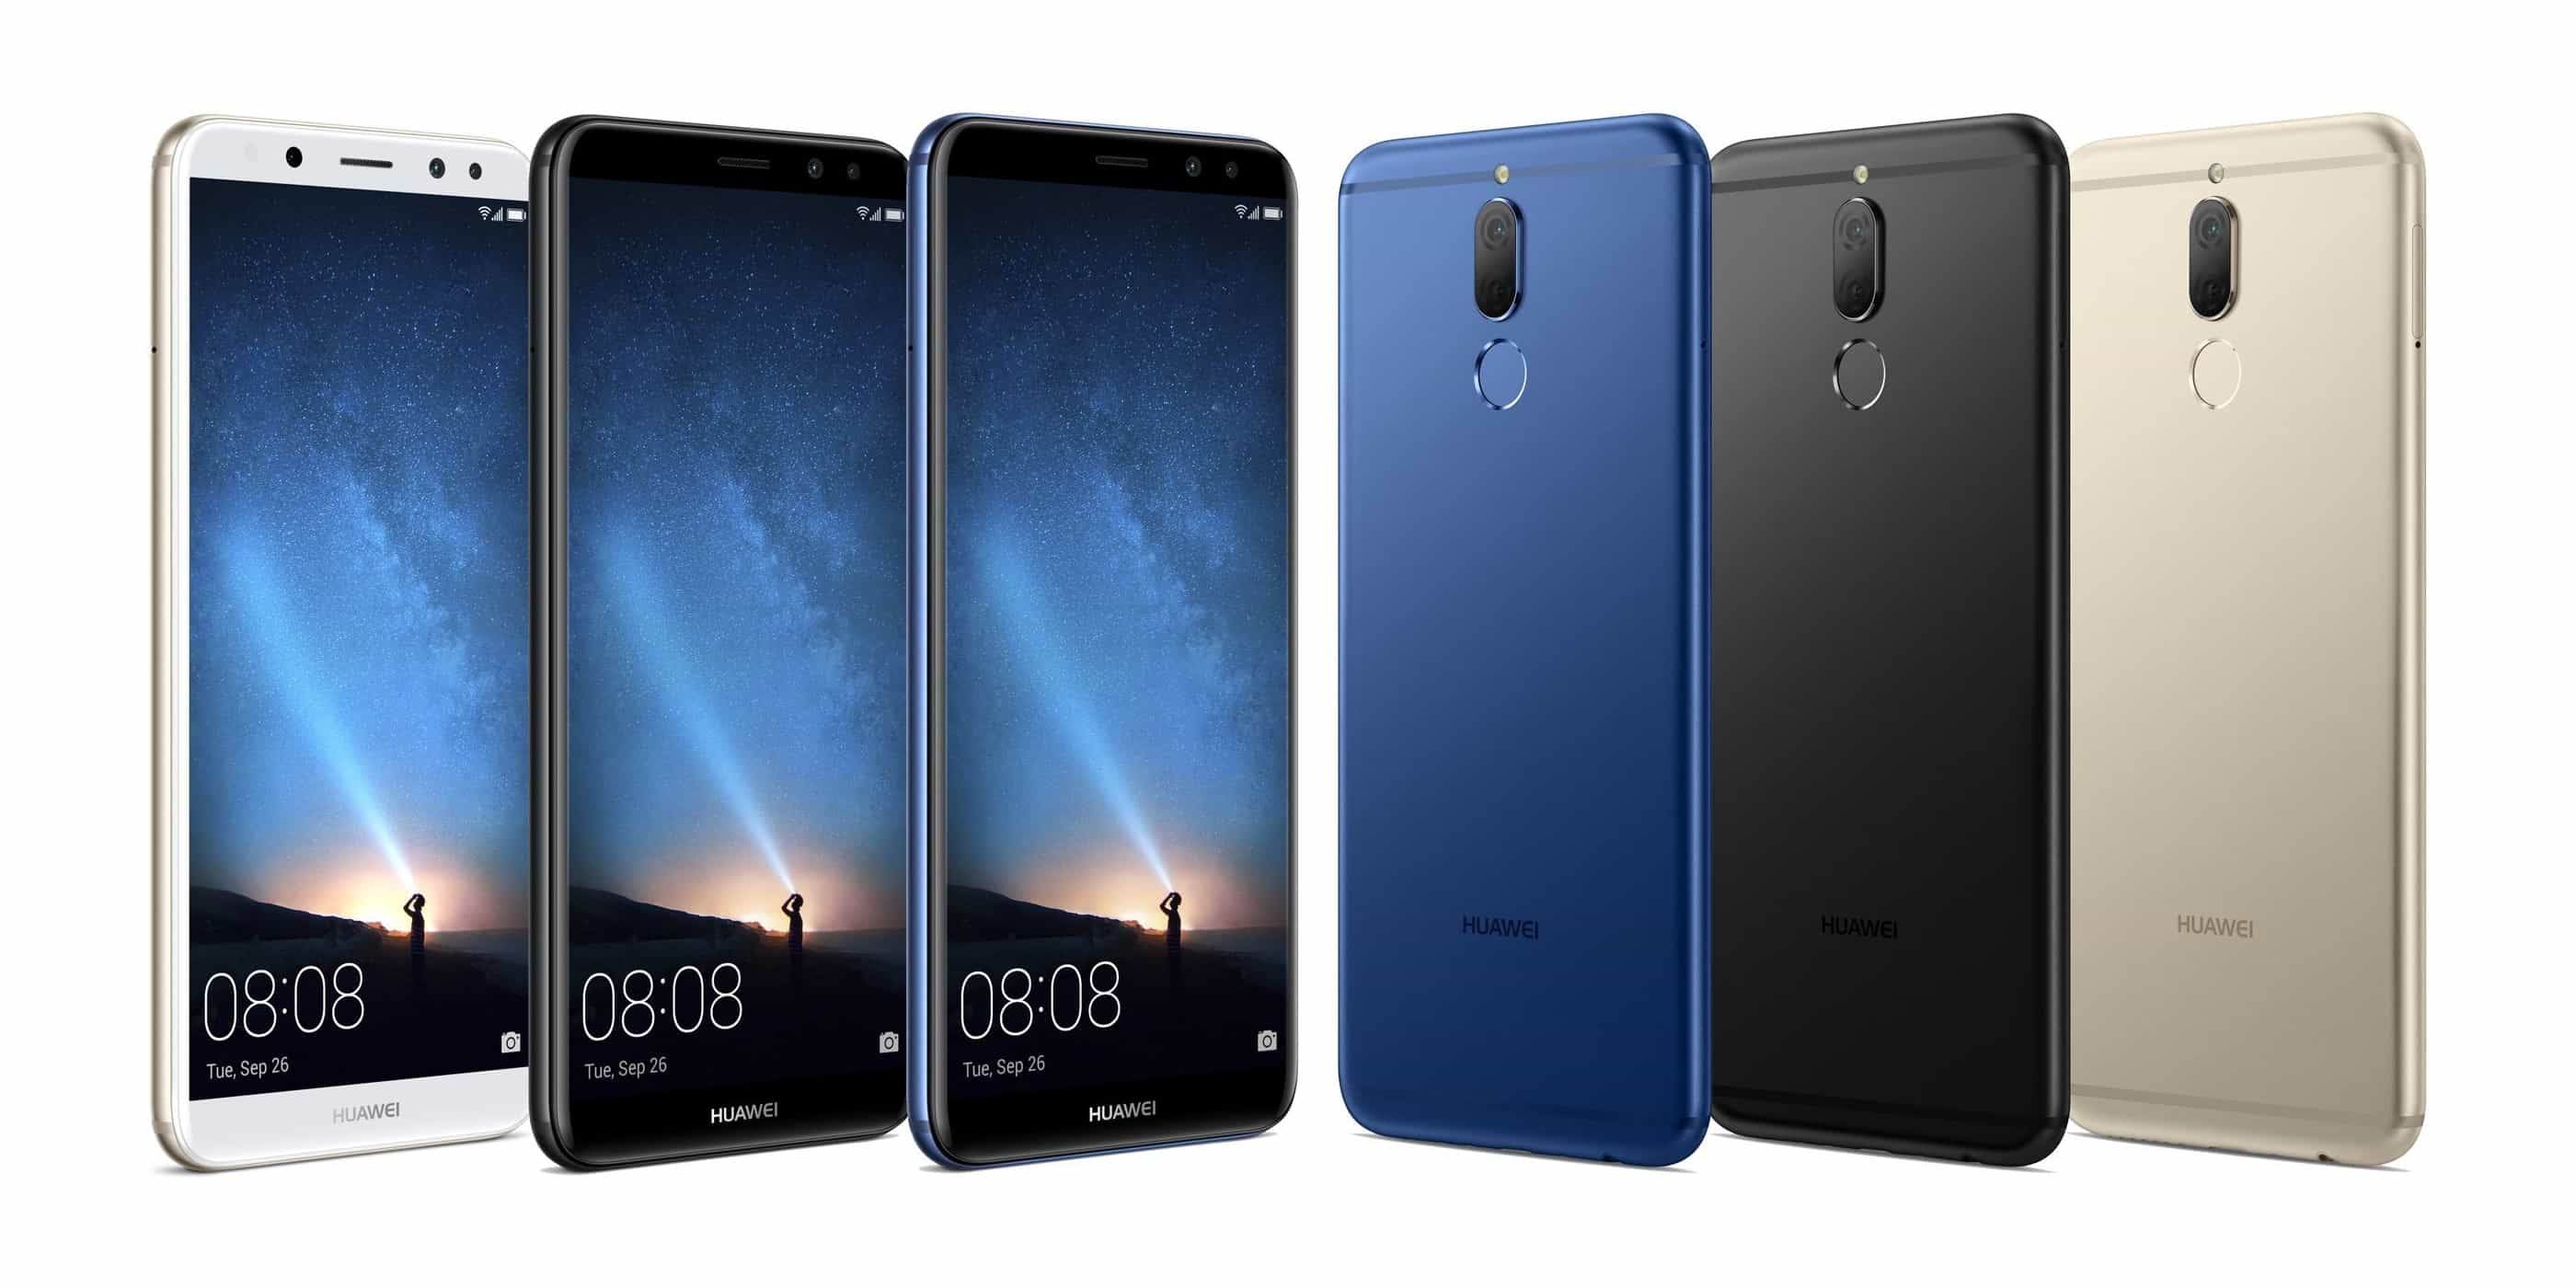 Huawei Mate 10 Lite 5ghz Wifi 7 1 9 сlick Cheap Android Smartphones Gadgets Phones Accessories Low Price